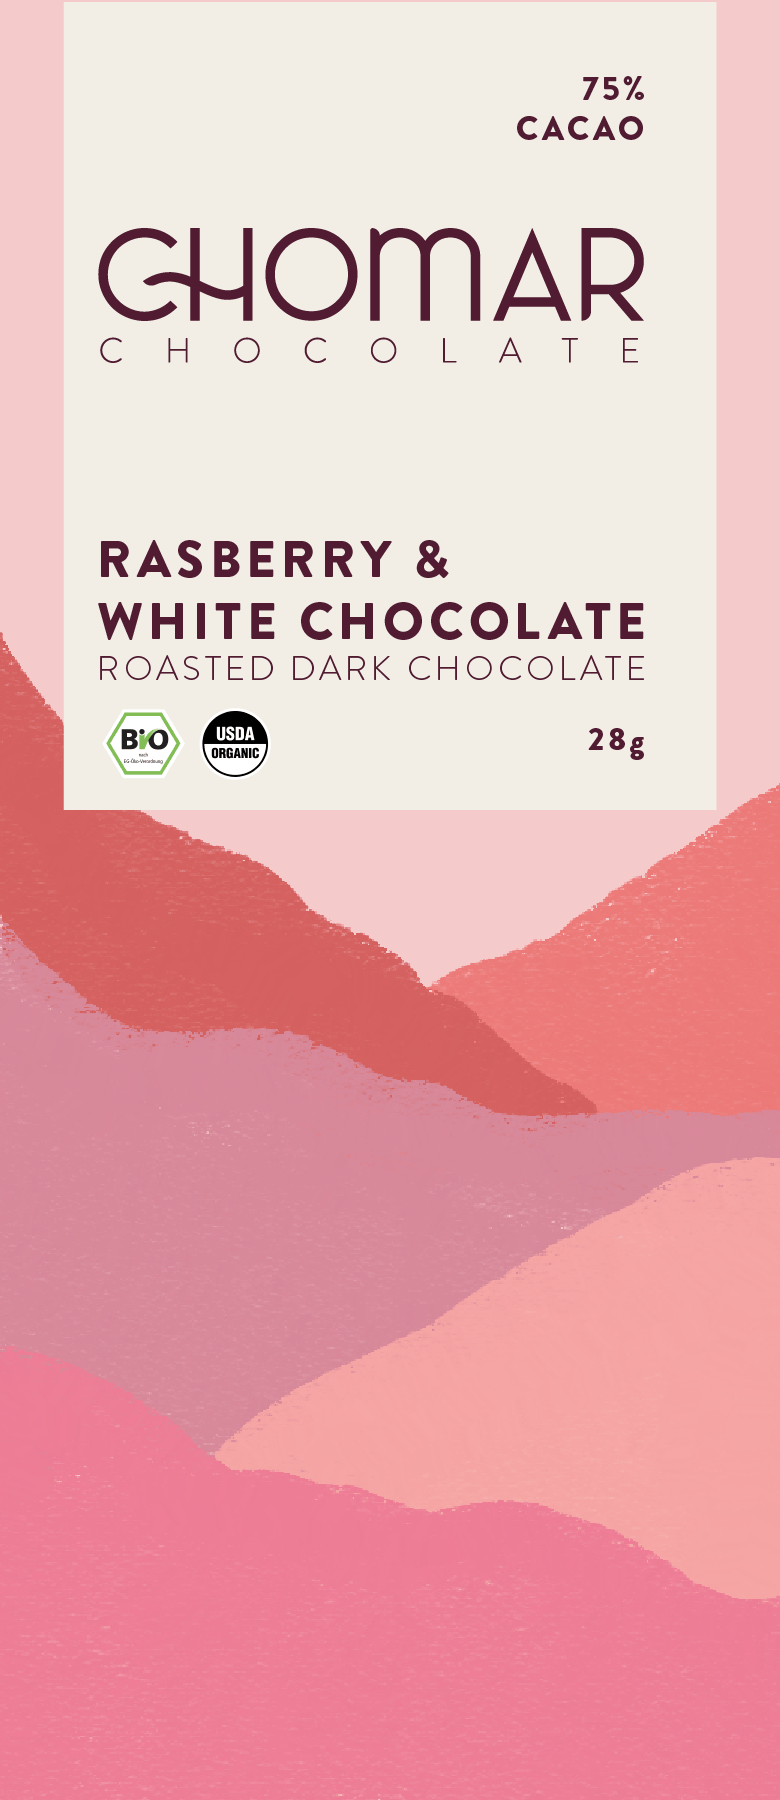 Chomar Chocolate Bar Package Design - image 1 - student project